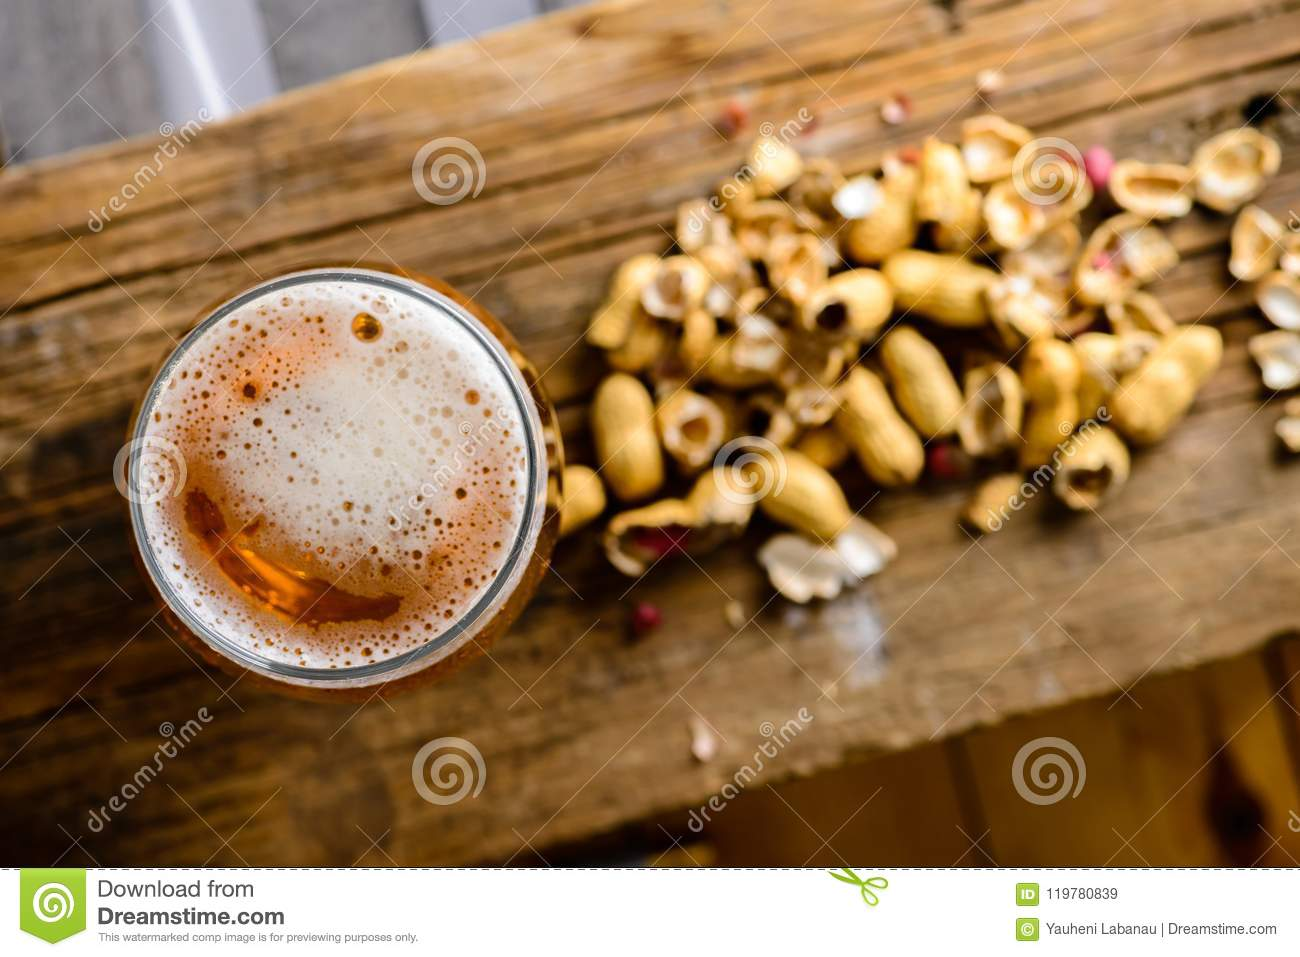 Beer glass with dark cold beer with bubble froth and peanuts on